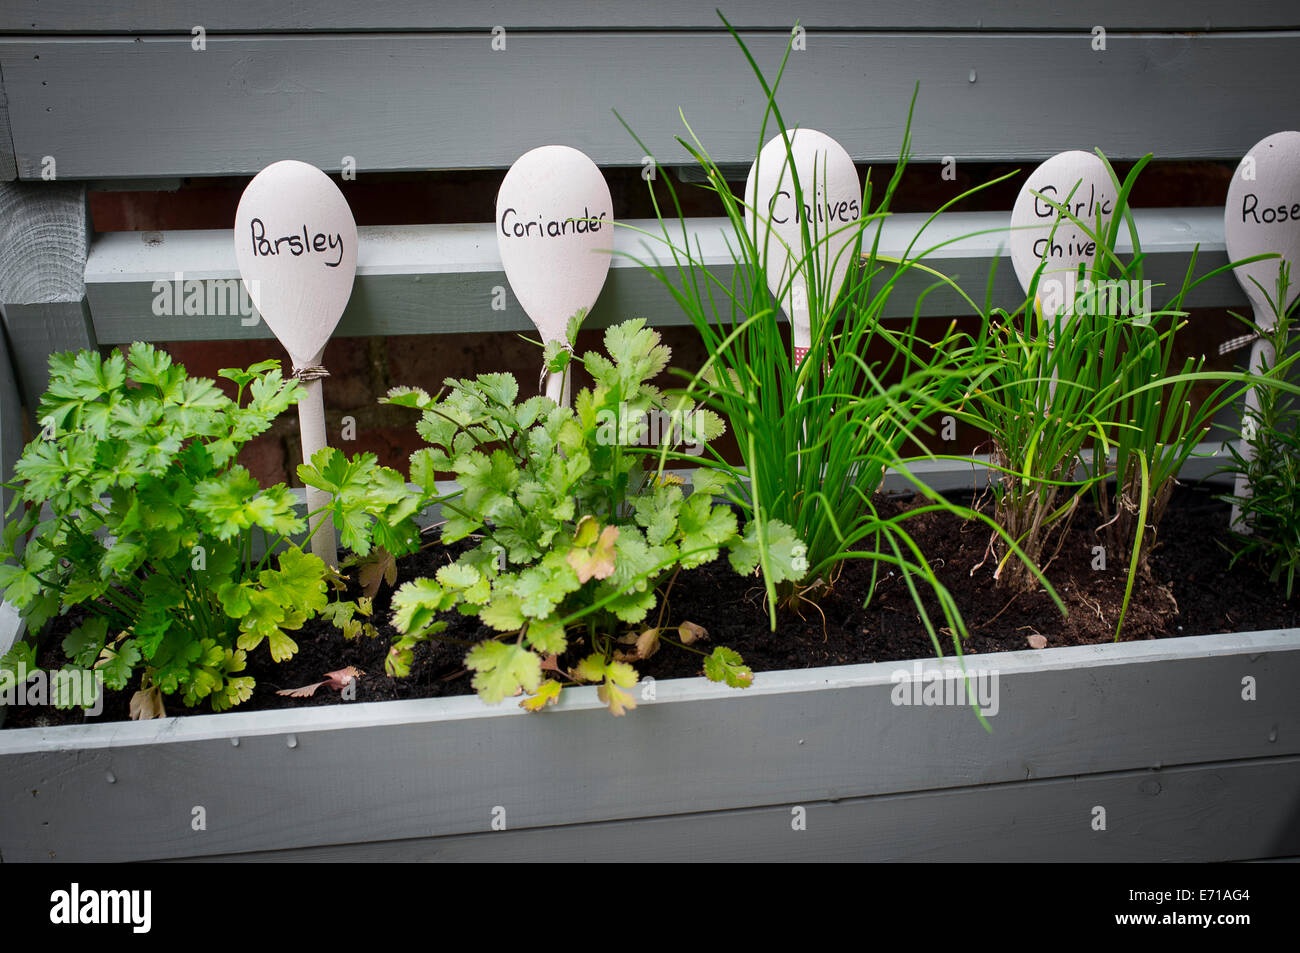 Young herb plants being grown in a window box. - Stock Image